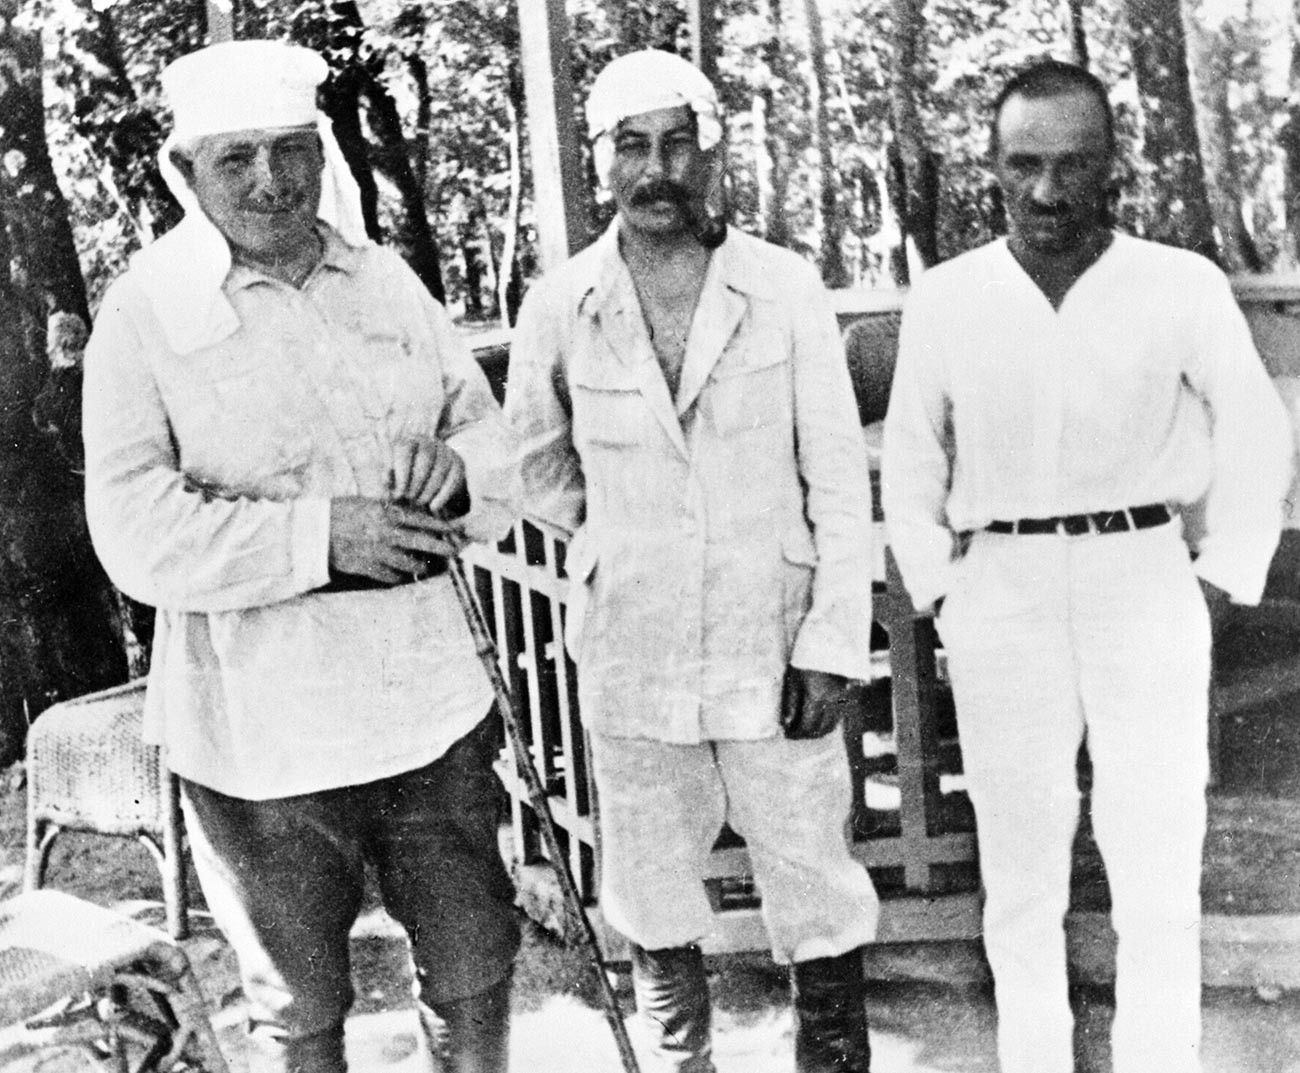 Stalin (center) and Anastas Mikoyan (right) taking rest